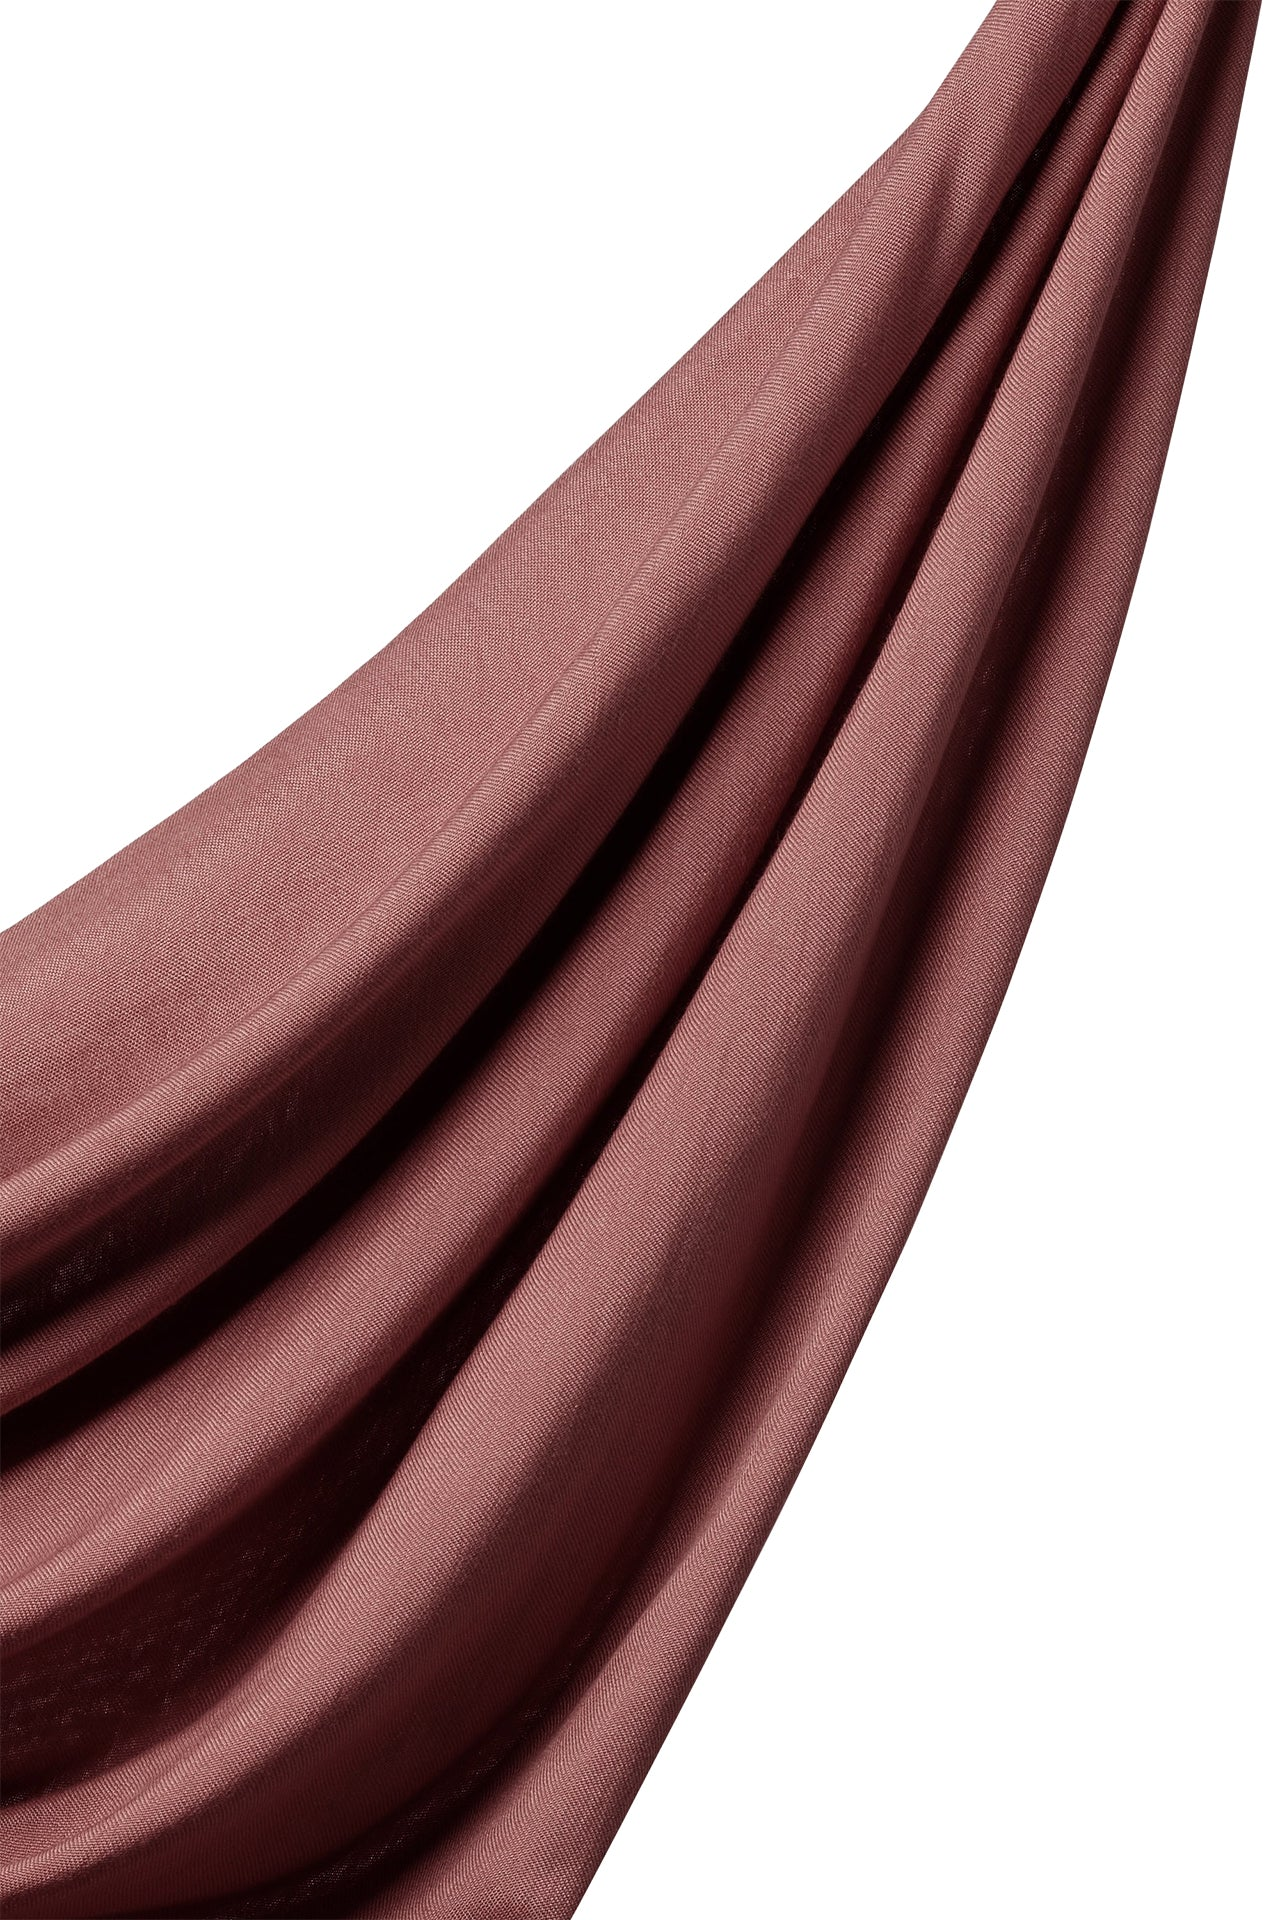 Bamboo Woven Hijab in Rose Mauve